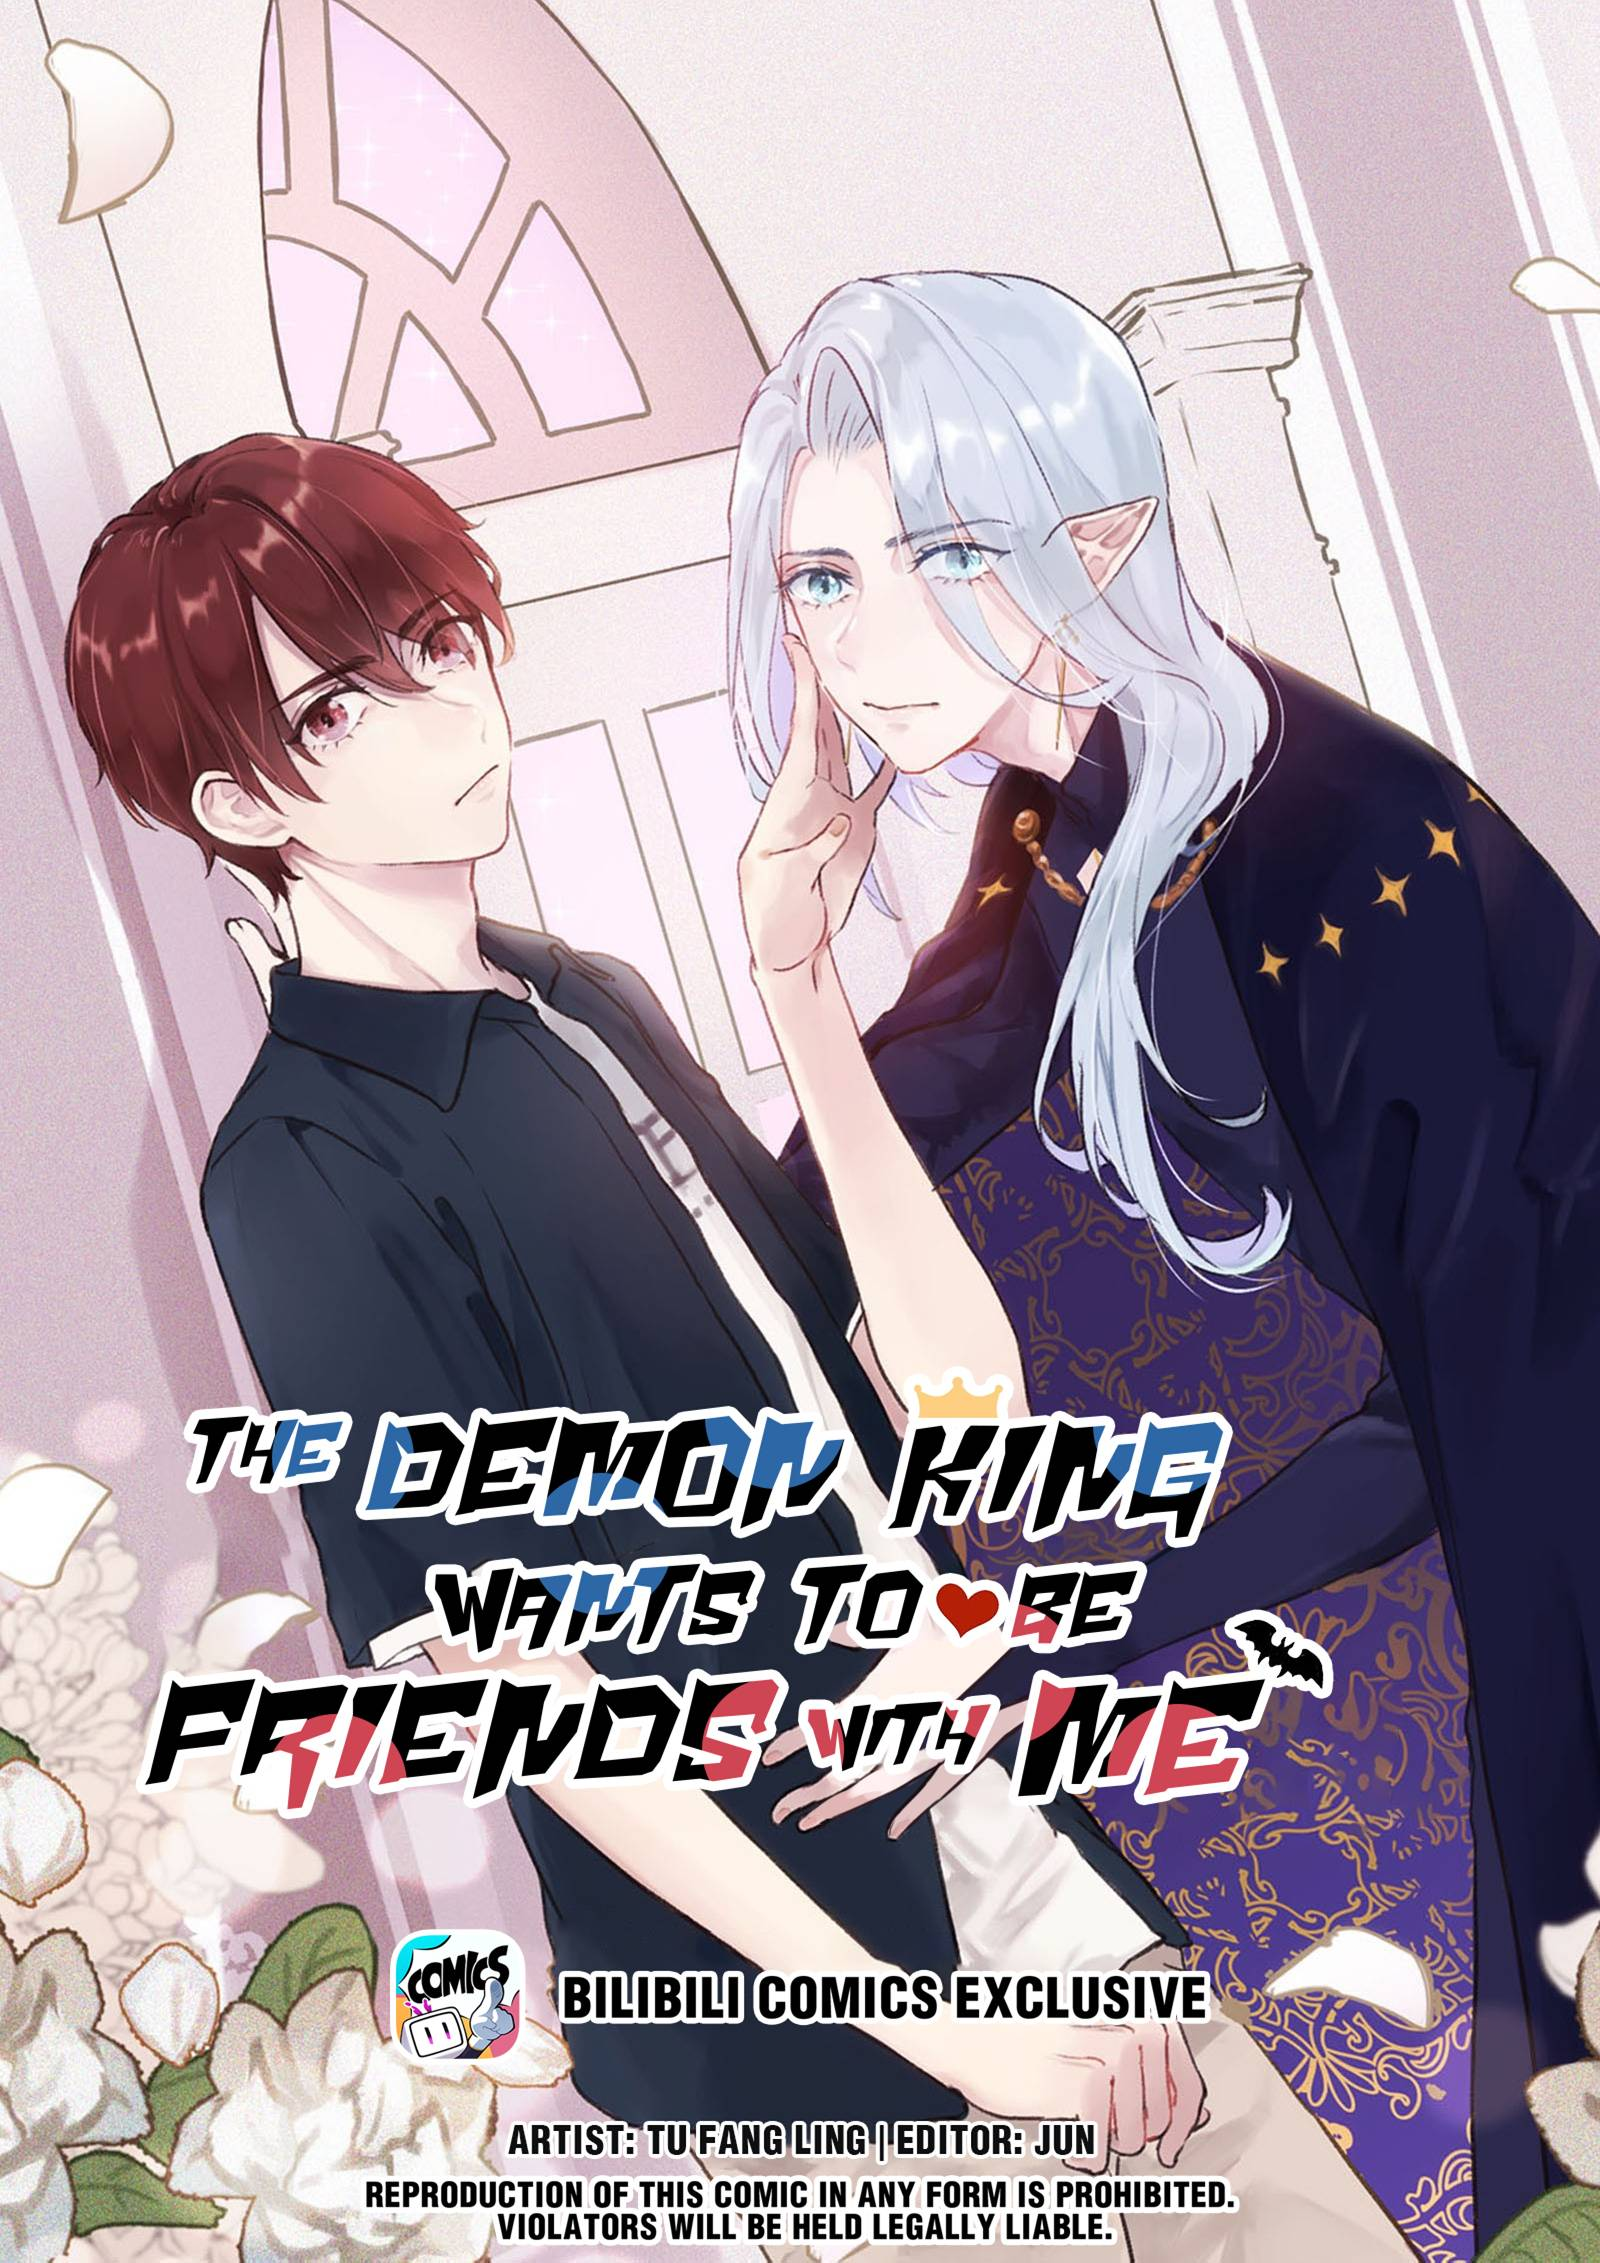 The Demon King Wants To Be Friends With Me - chapter 2 - #1